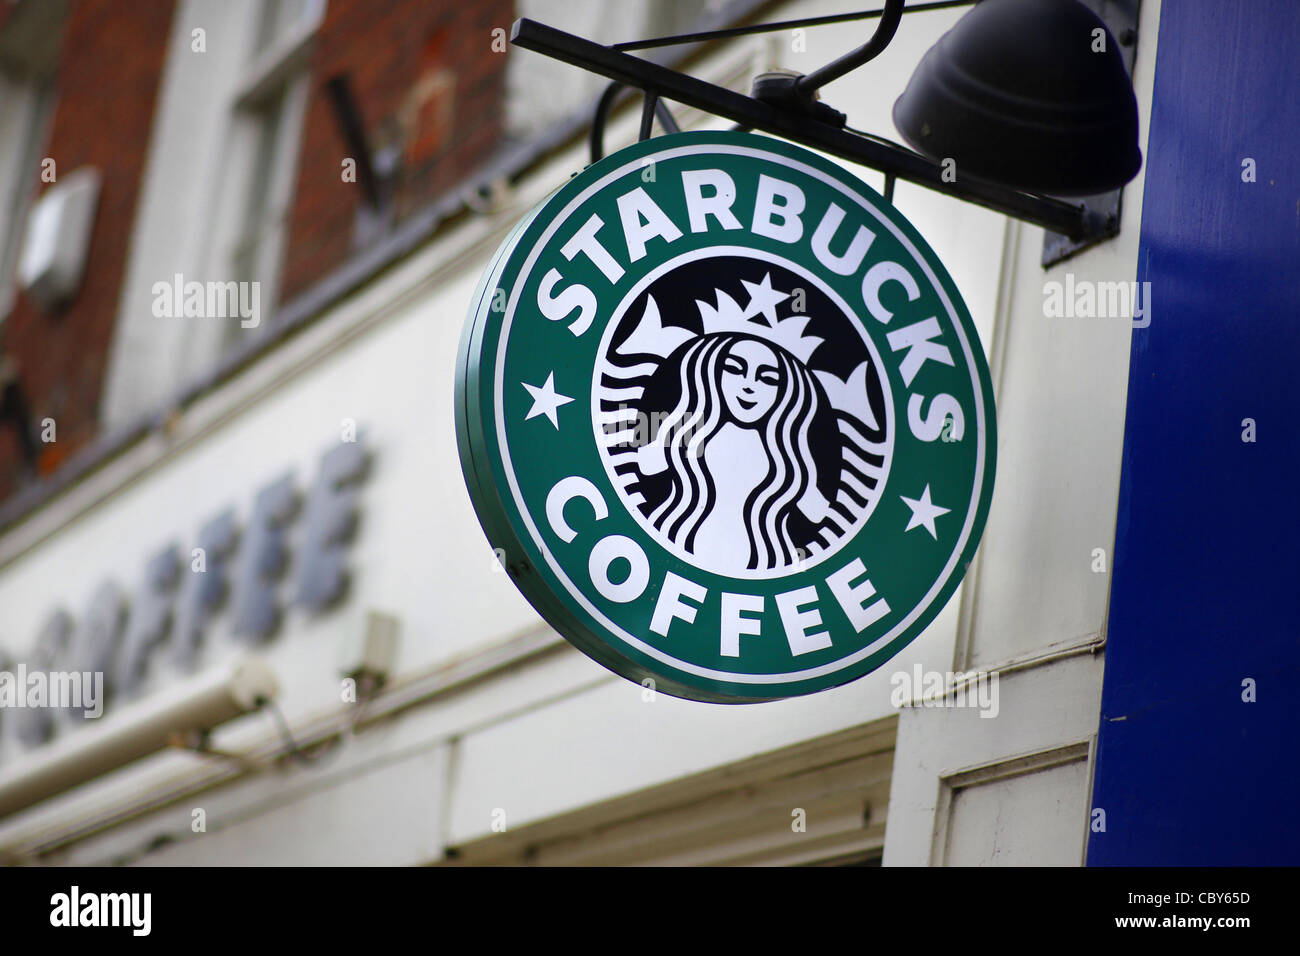 Starbucks coffee sign Stock Photo